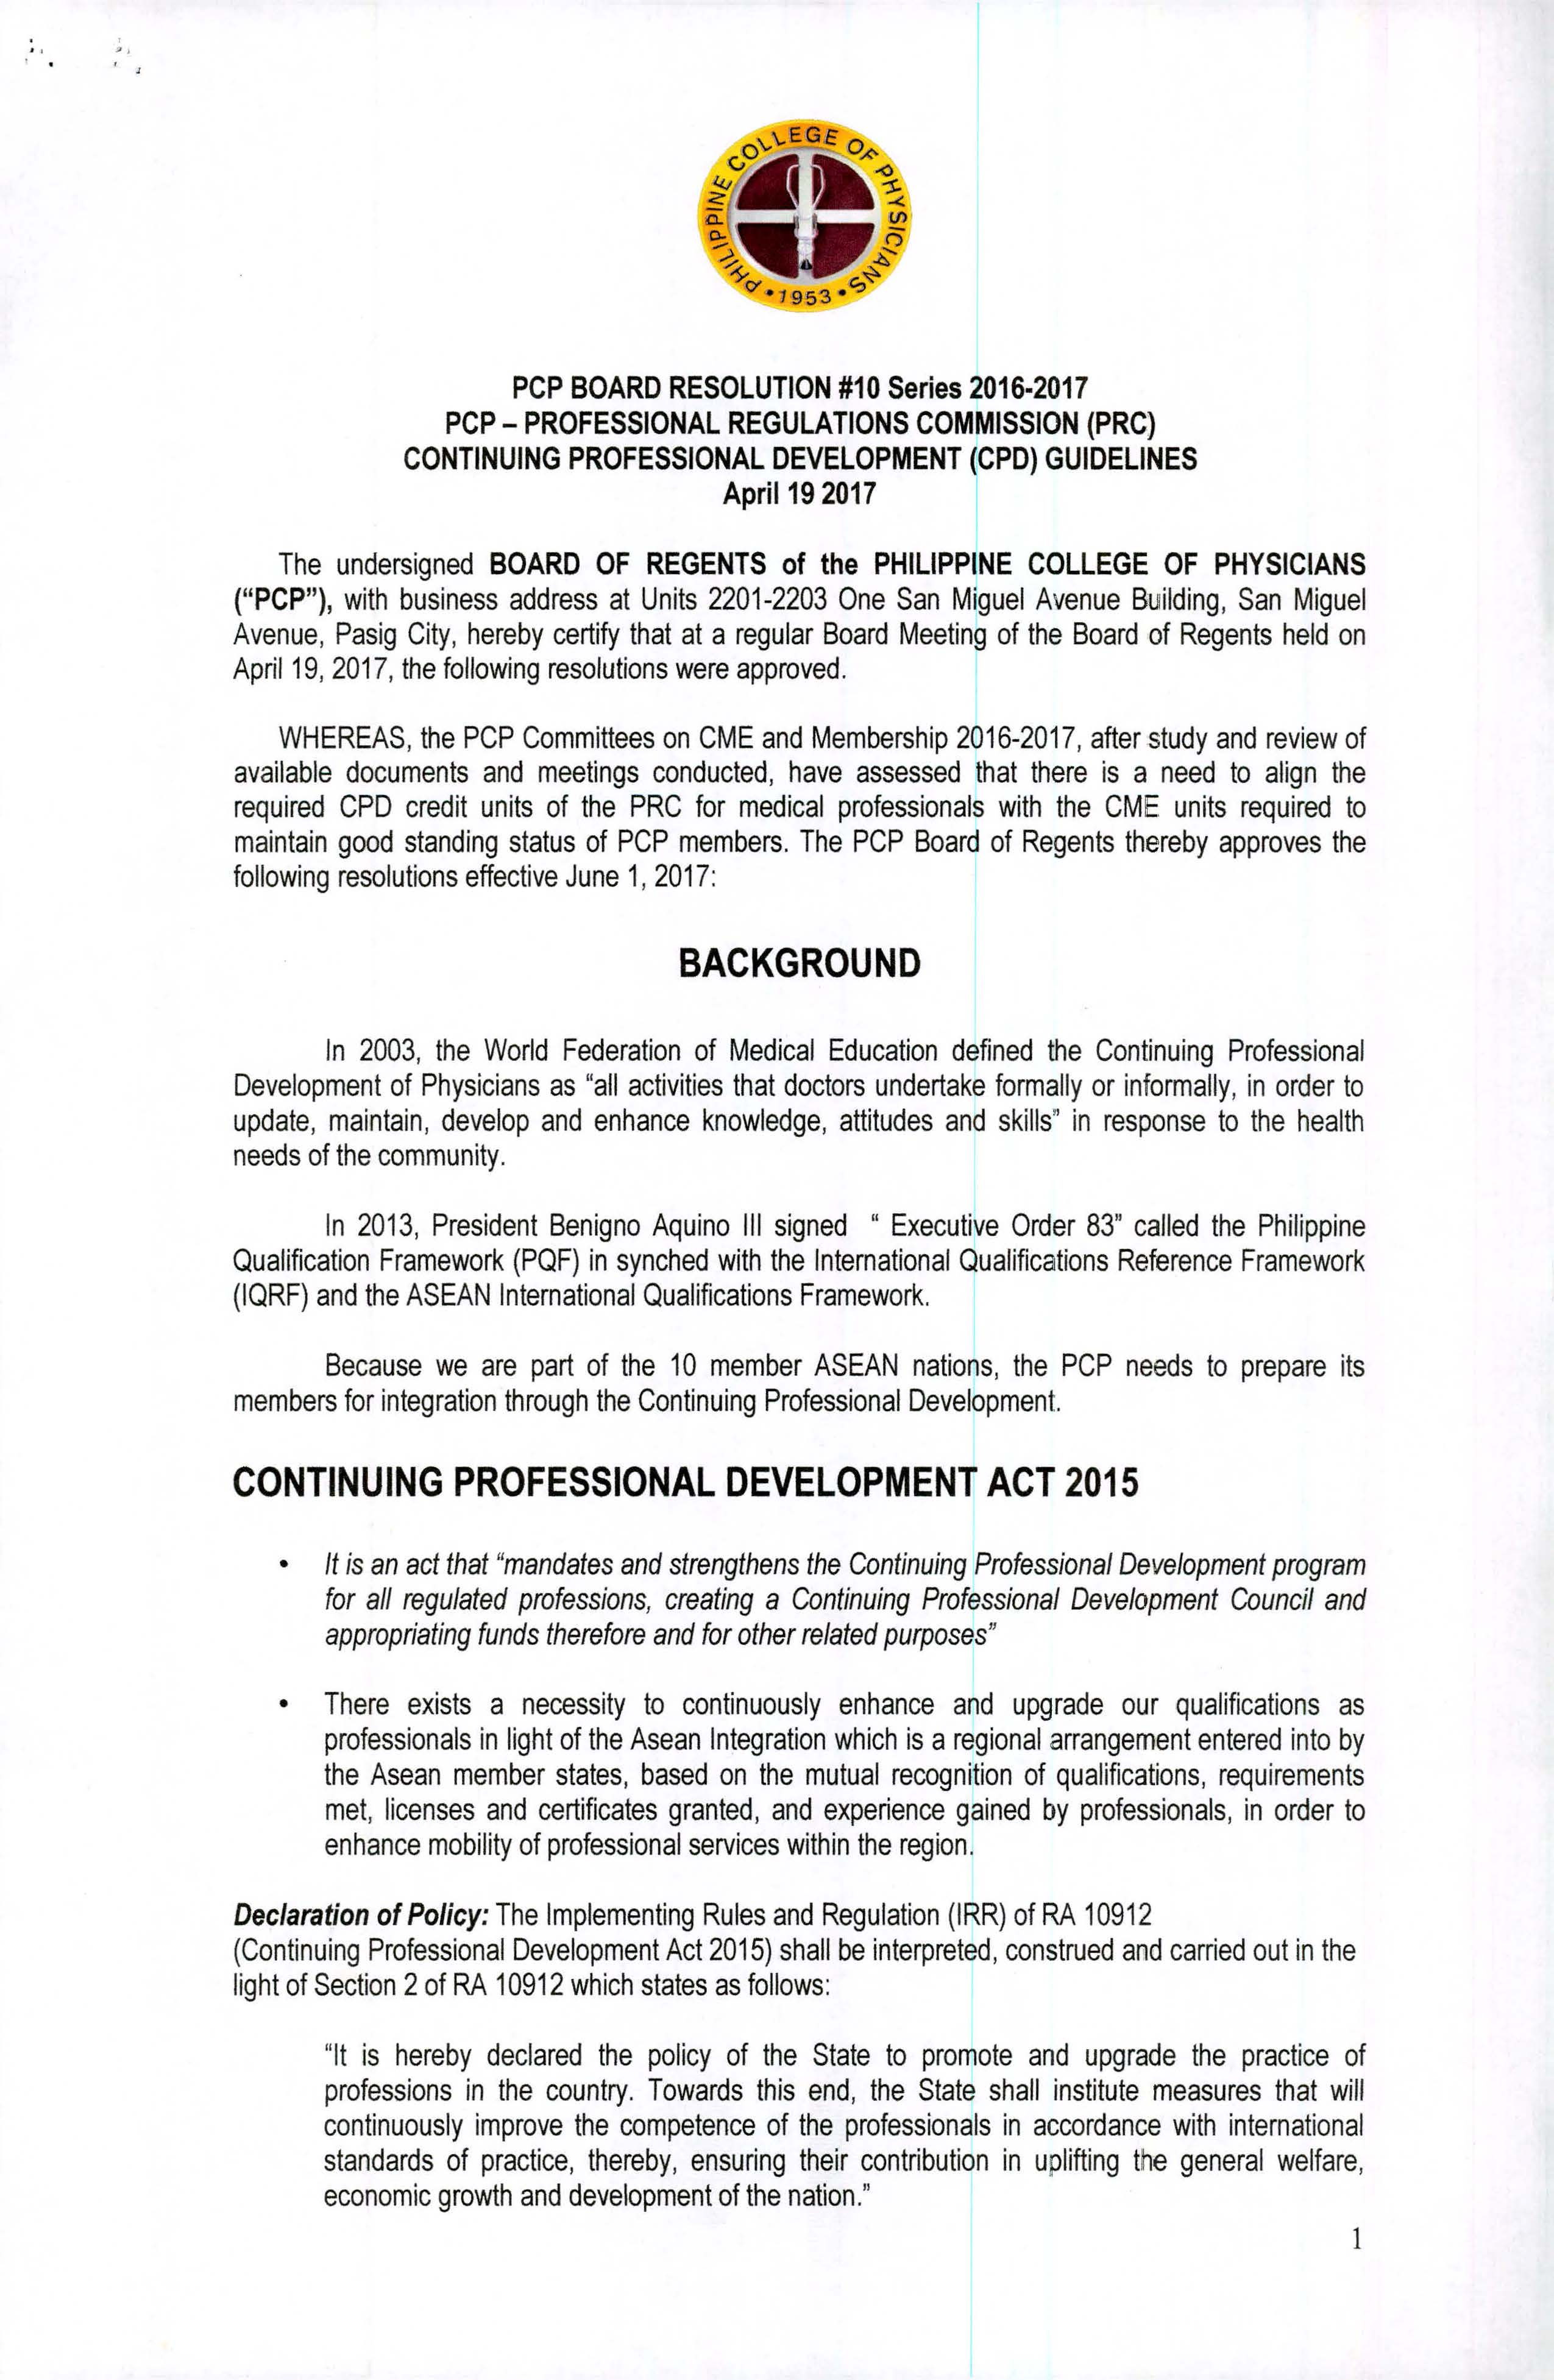 PCP CPD Board Resolution 10 wsignatures Page 1